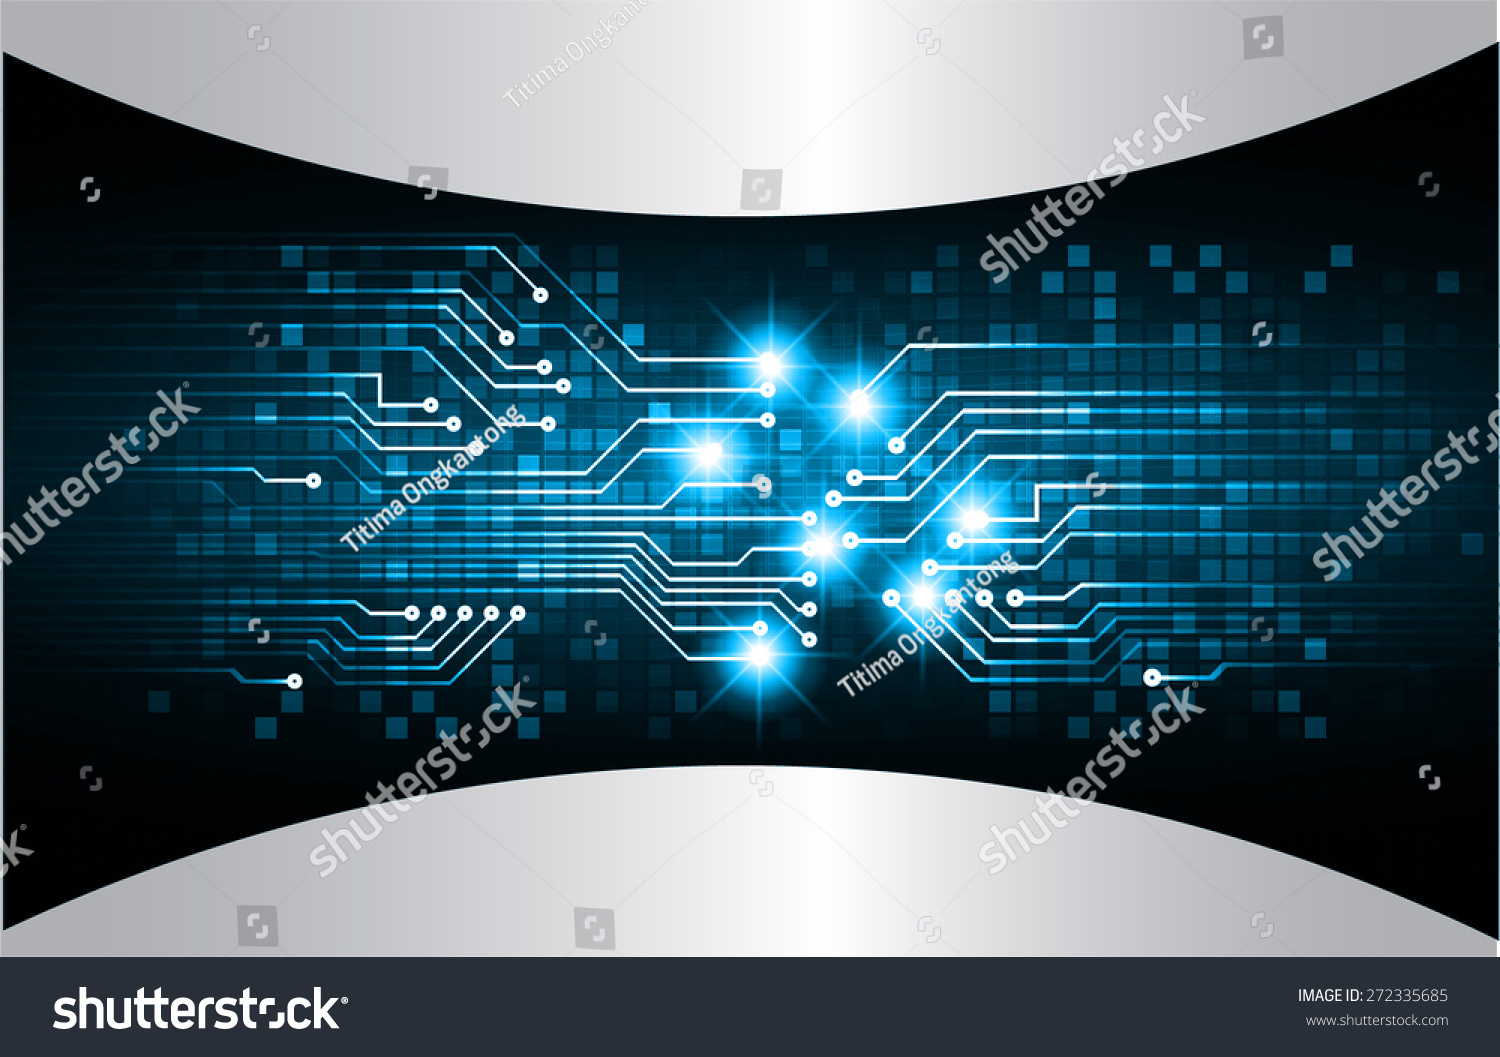 Abstract Circuit Board Background By Silvertiger: Dark Blue Color Light Abstract Technology Stock Vector